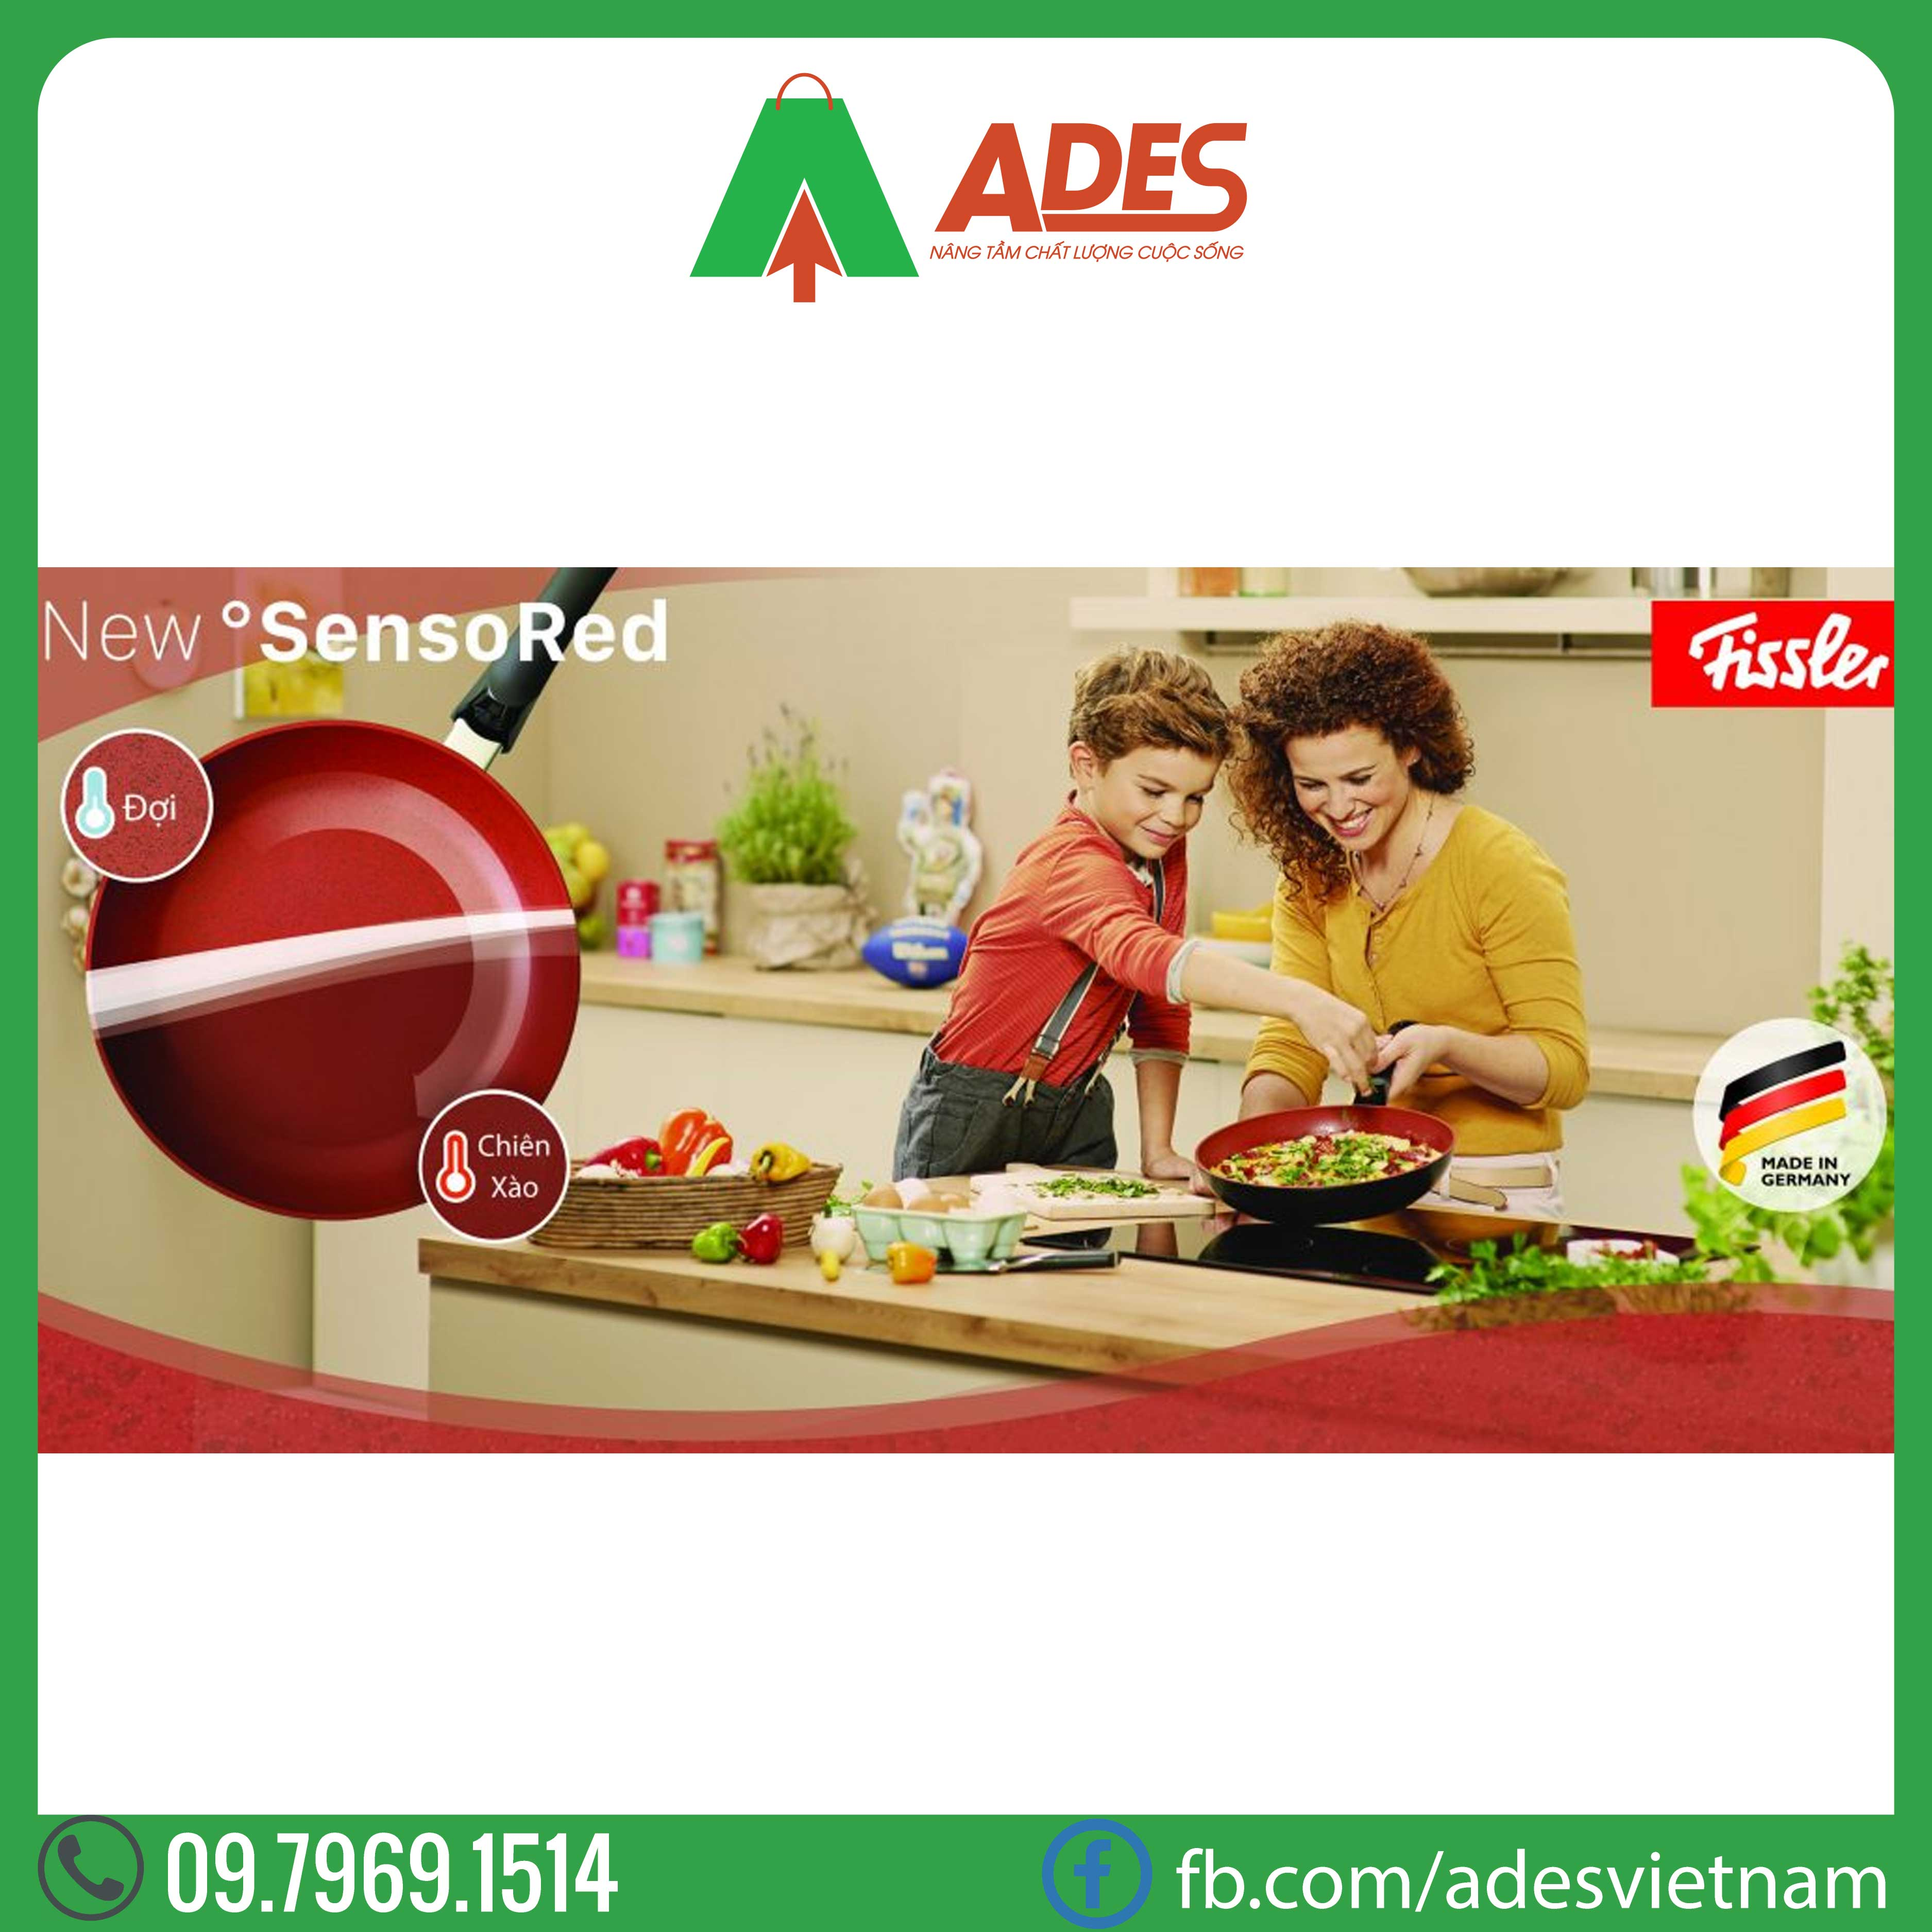 Chao Fissler SensoRed 28cm | Dien may Ades